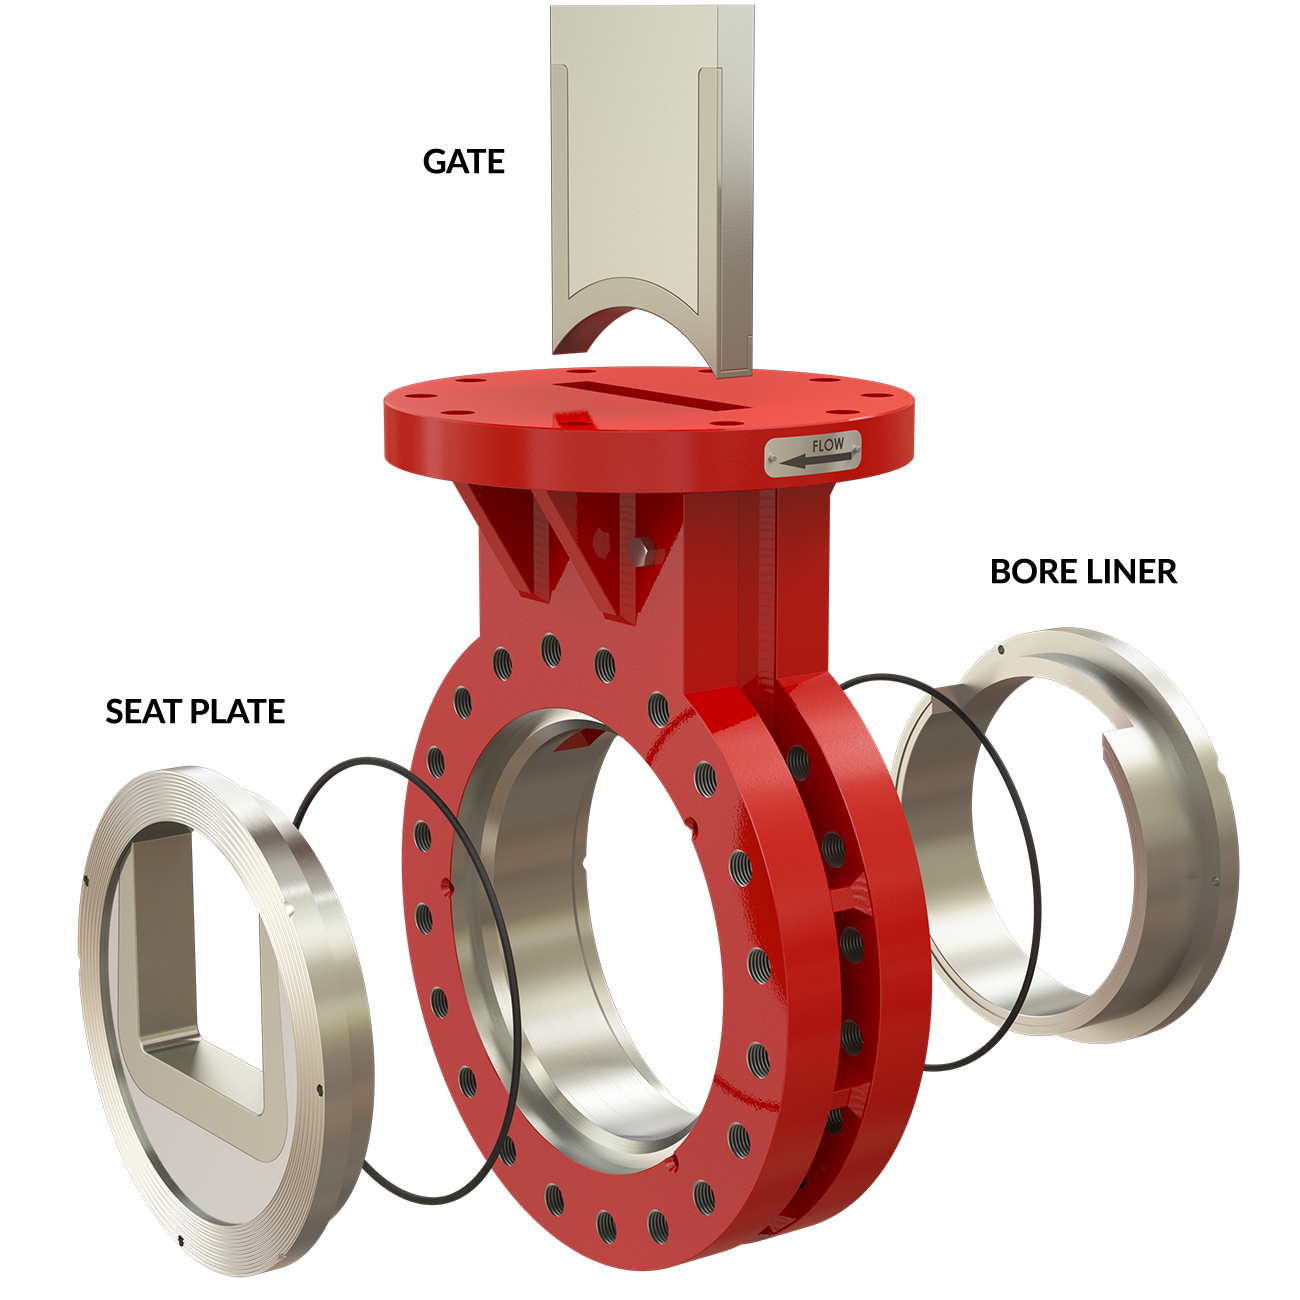 SlurryFlo Control Valve have replaceable seat plates which reduces downtime and labour costs of replacing entire valves.